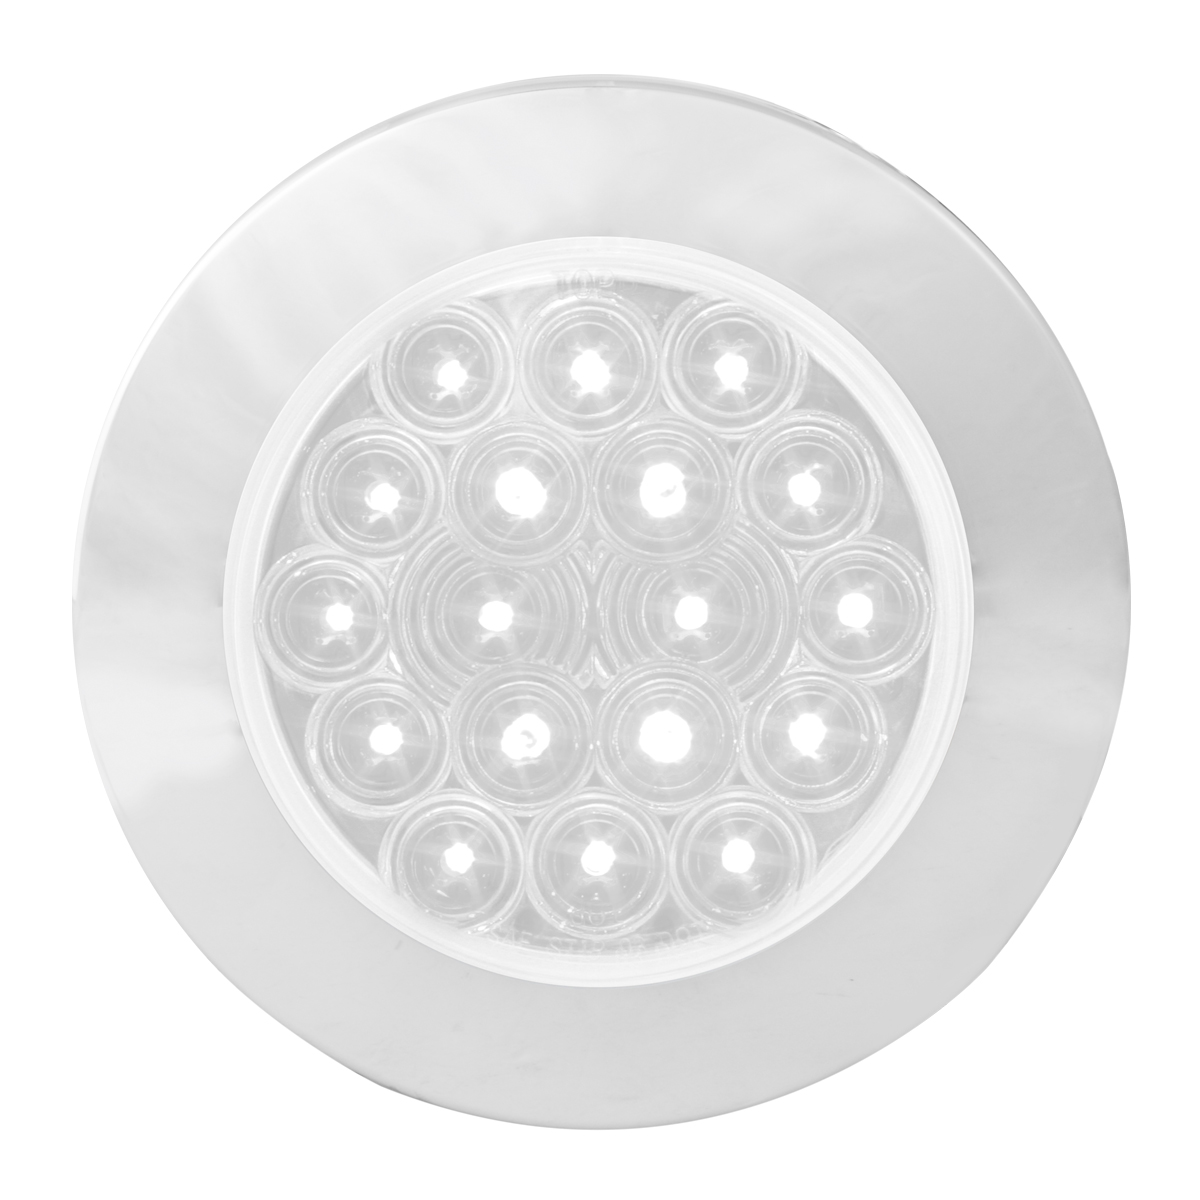 "75904 White/Clear 4"" Fleet Flange Mount LED Light with Chrome Twist & Lock Bezel"